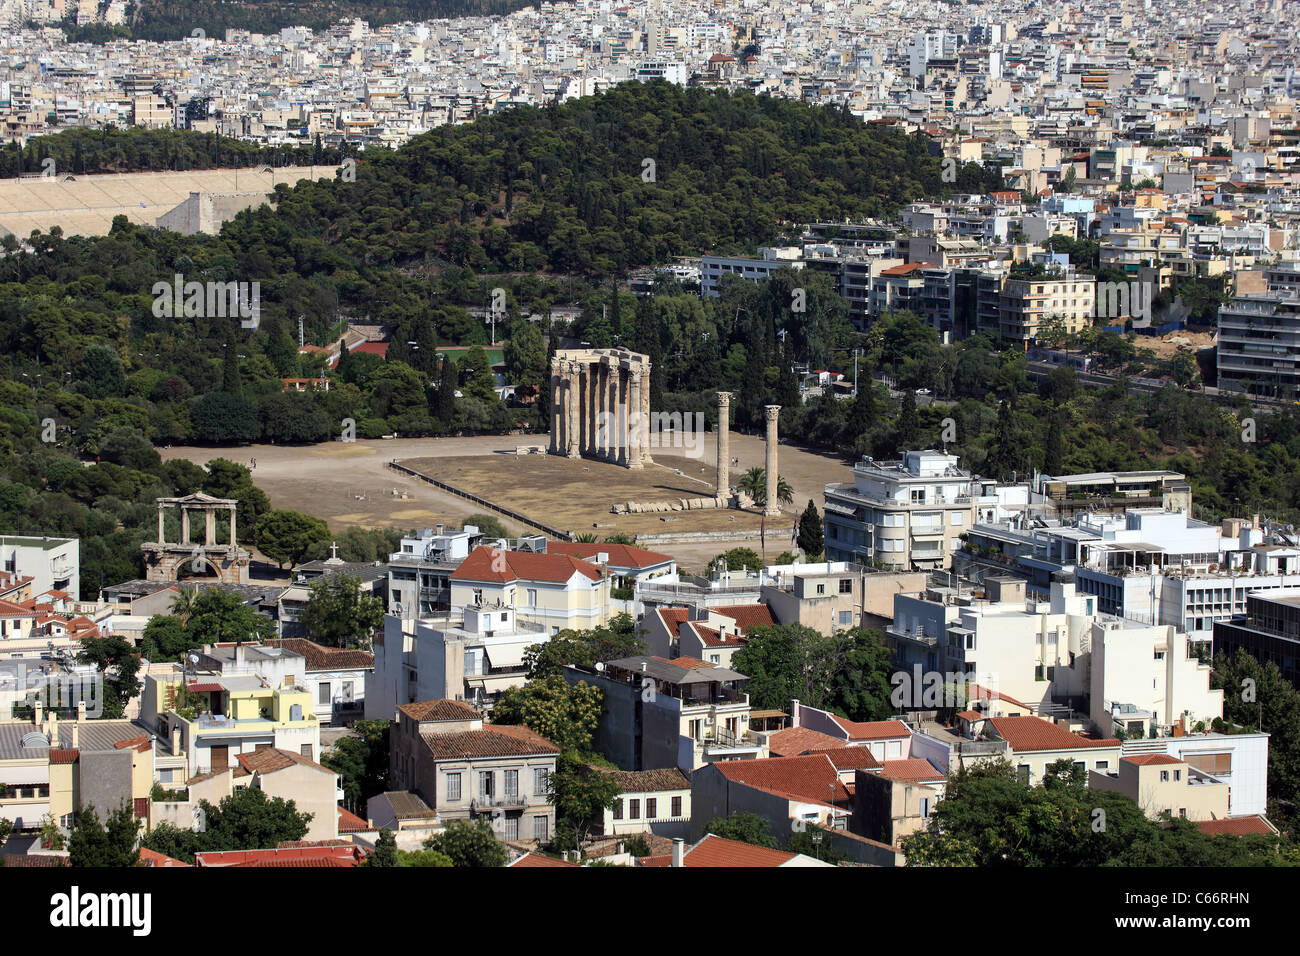 Athens Temple of Olympian Zeus in Greece - Stock Image